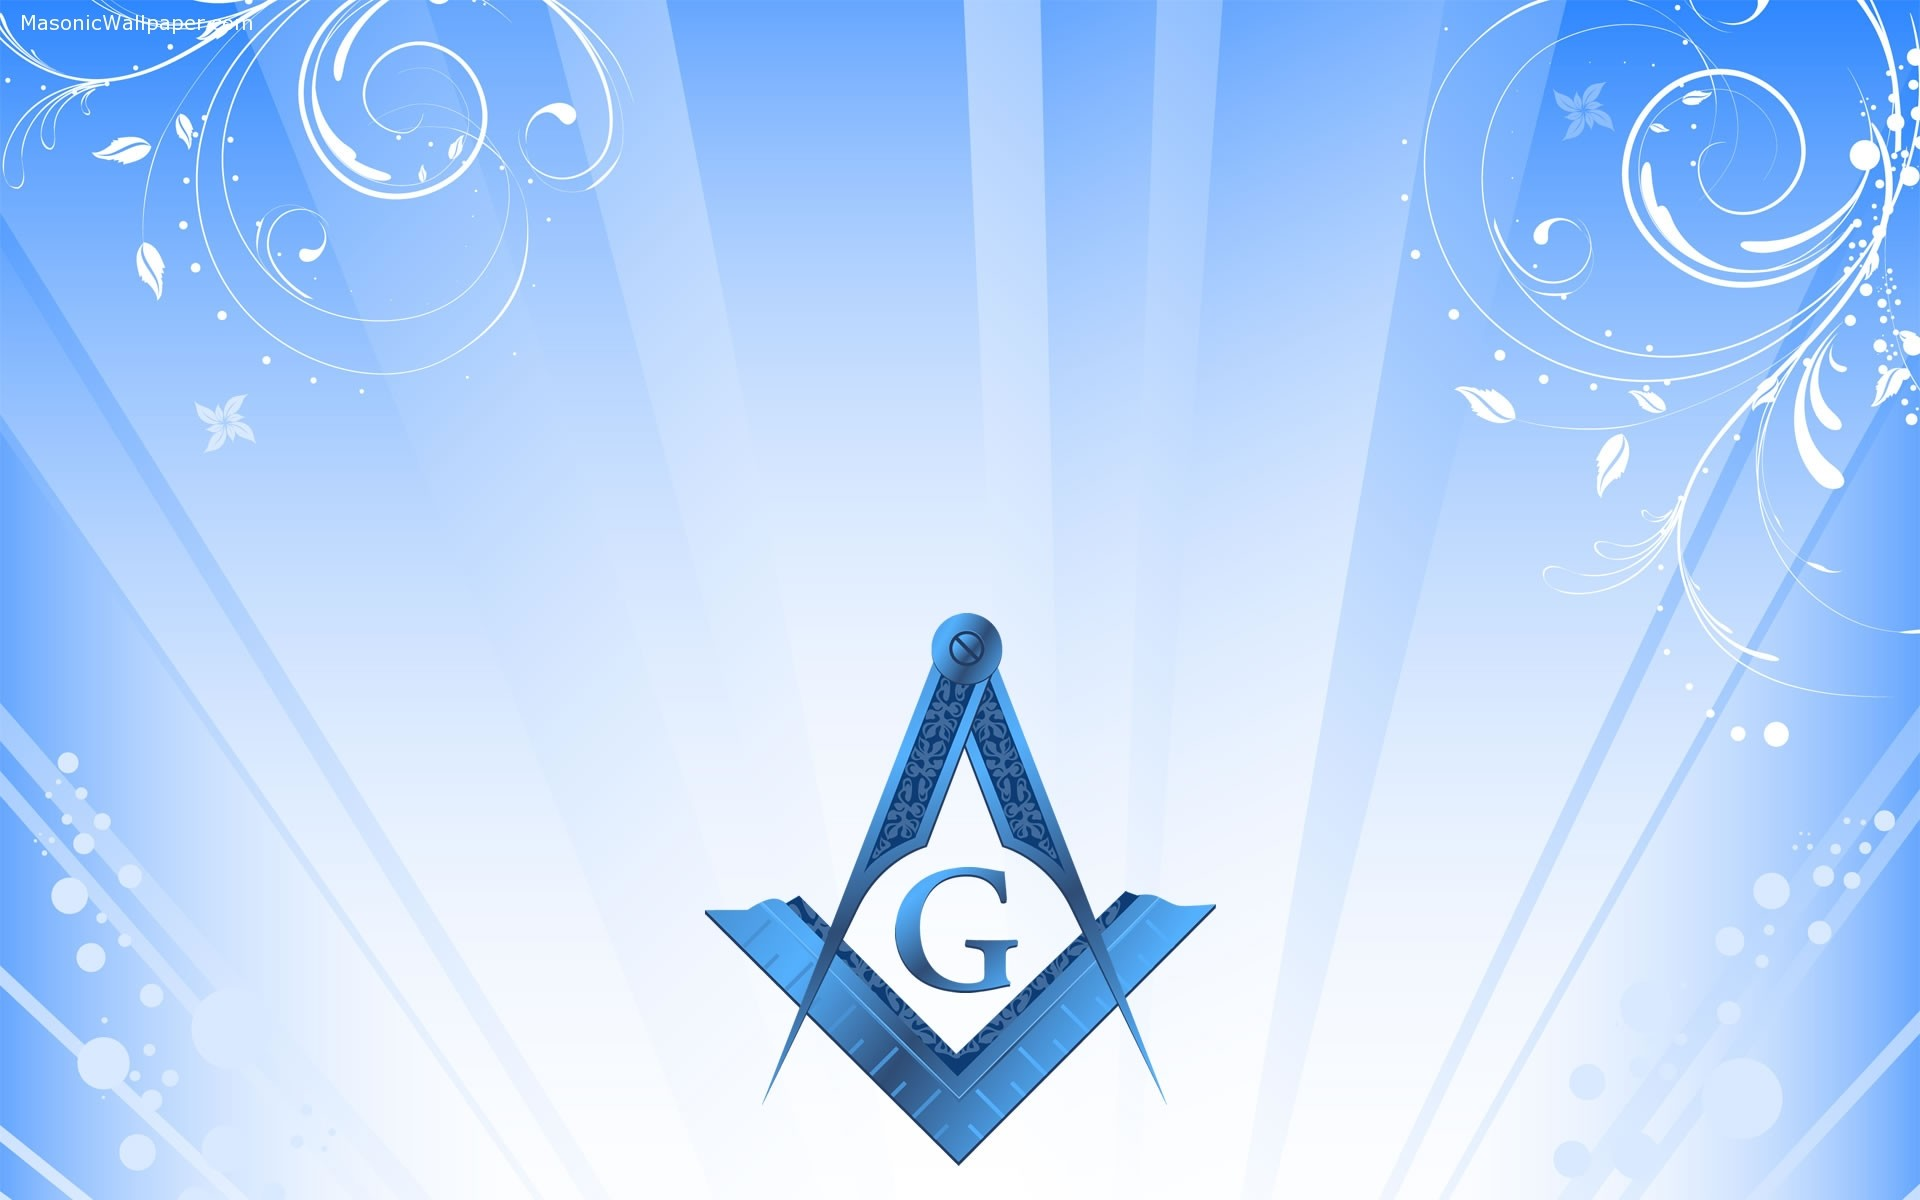 1920x1200 4. masonic-wallpaper8-600x375